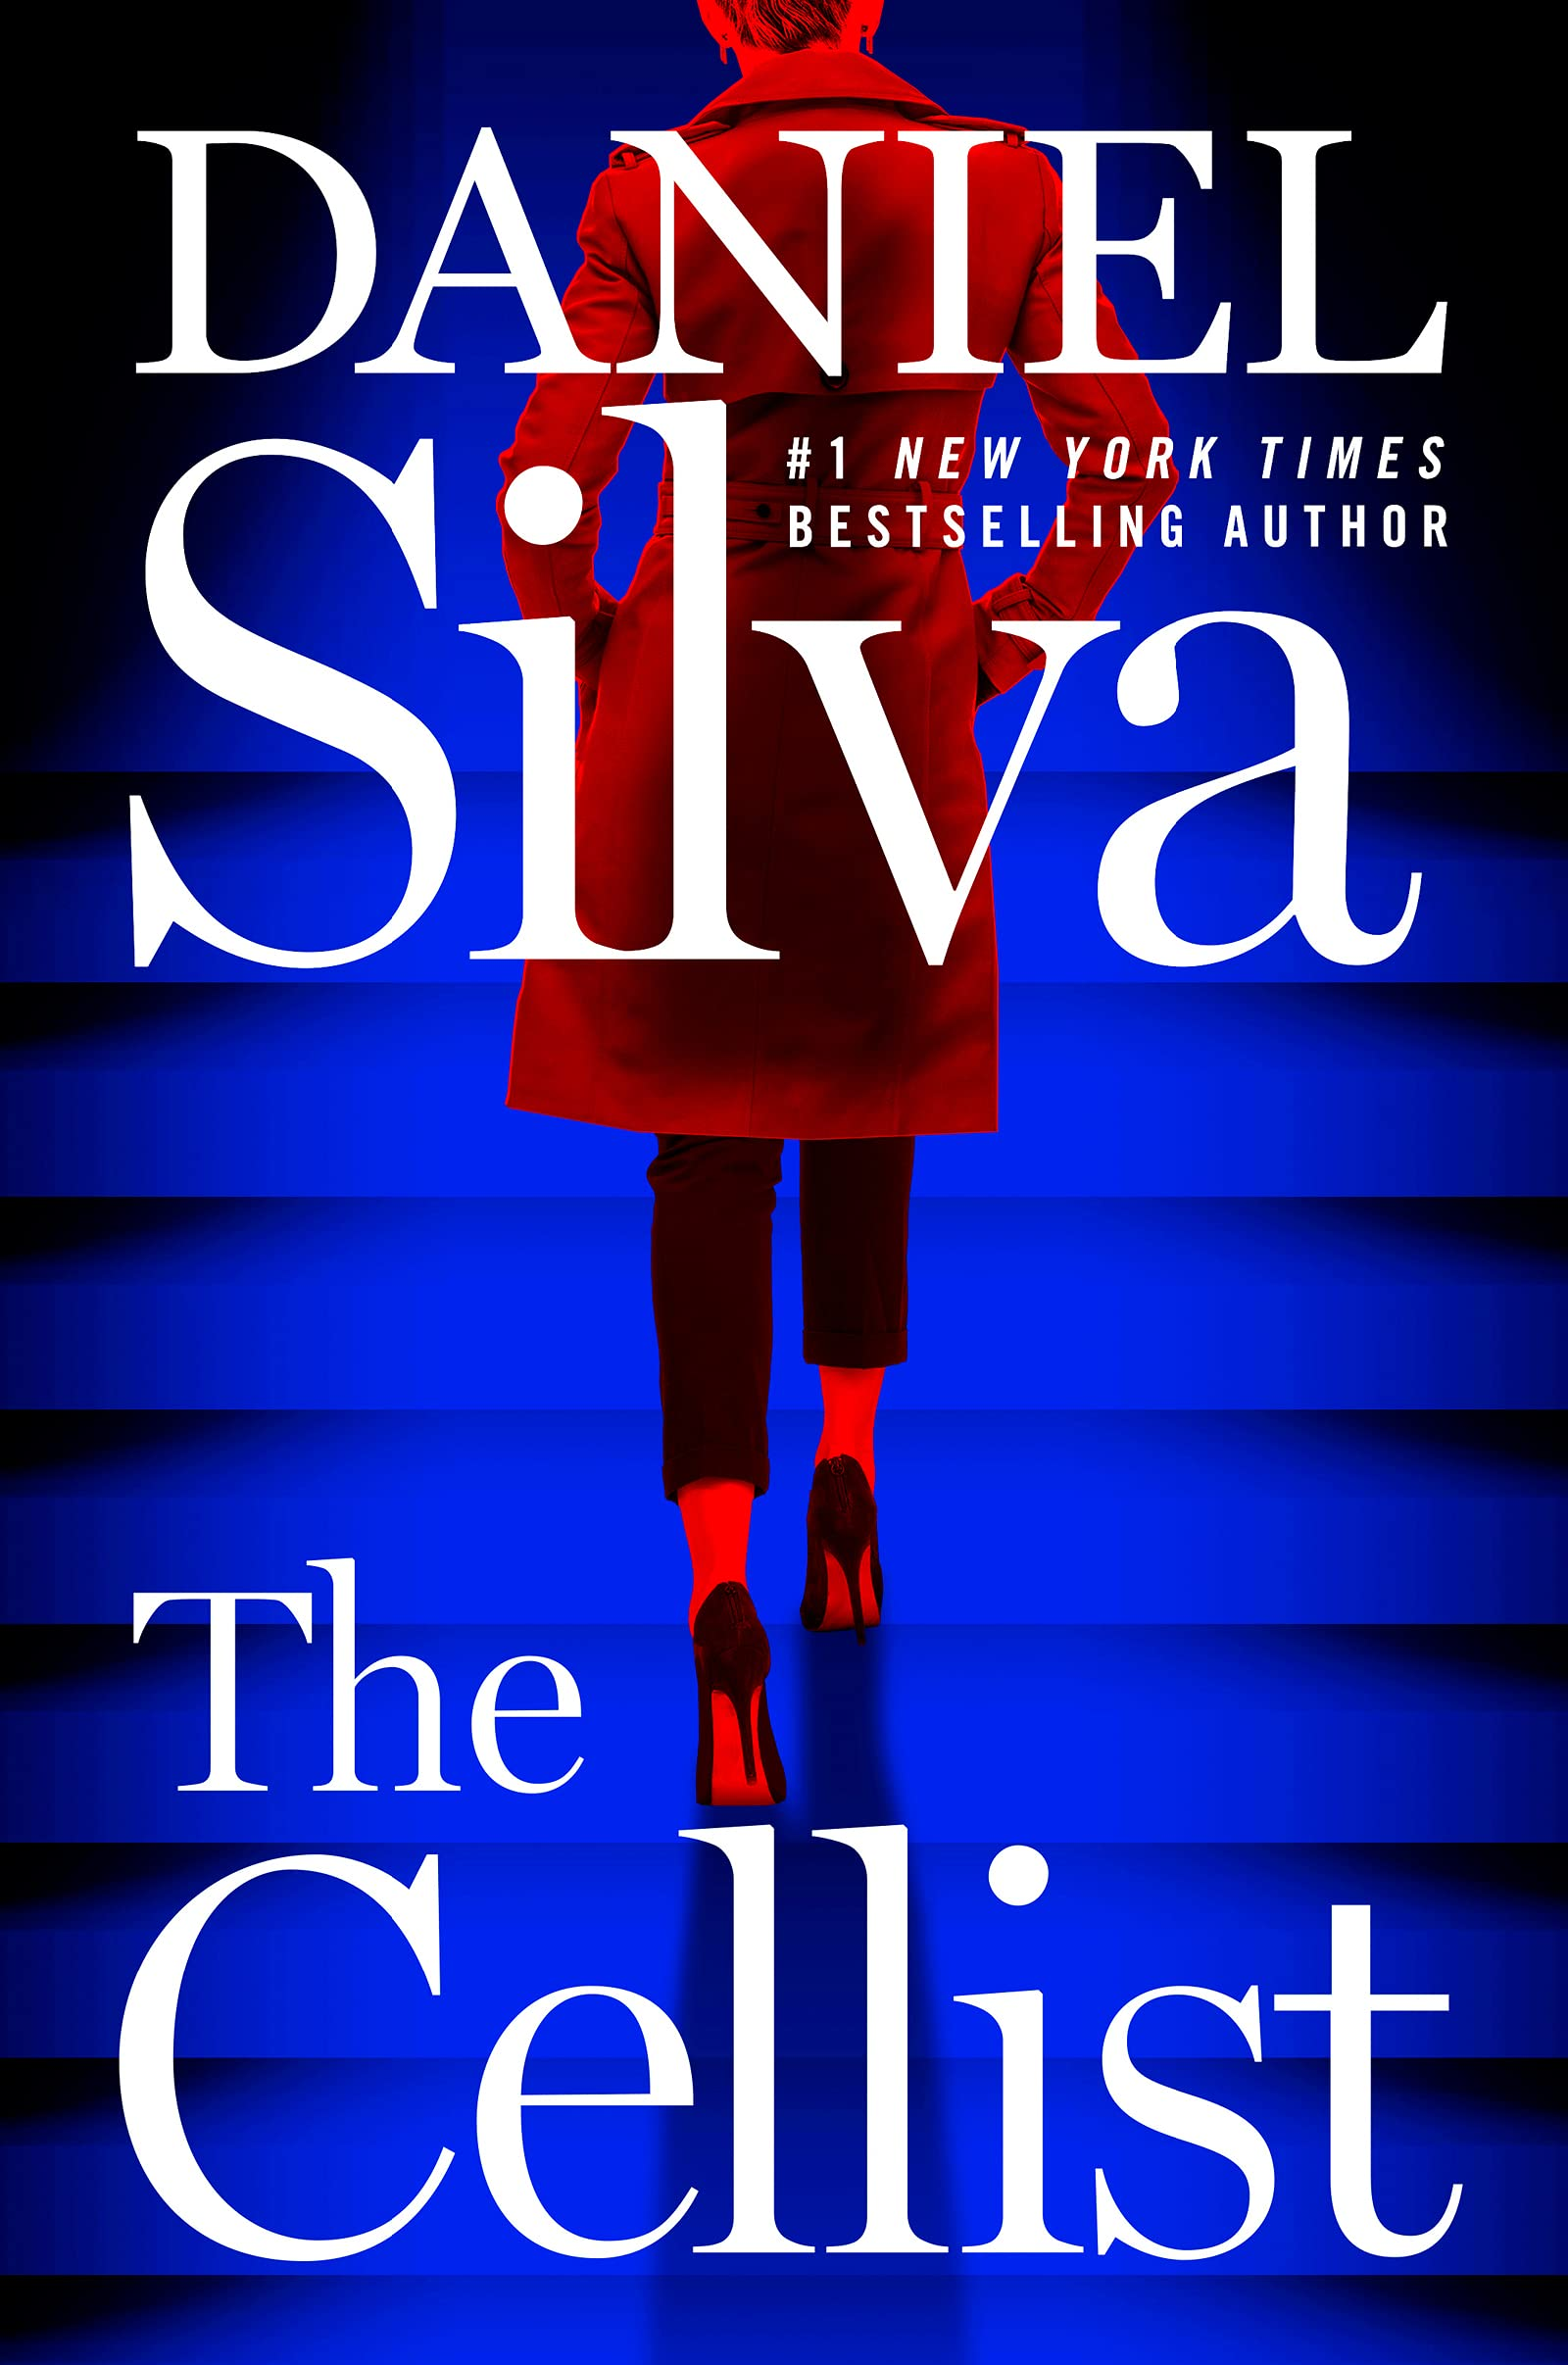 Apple Books Bestsellers: Silva's 'Cellist' Bows at #1